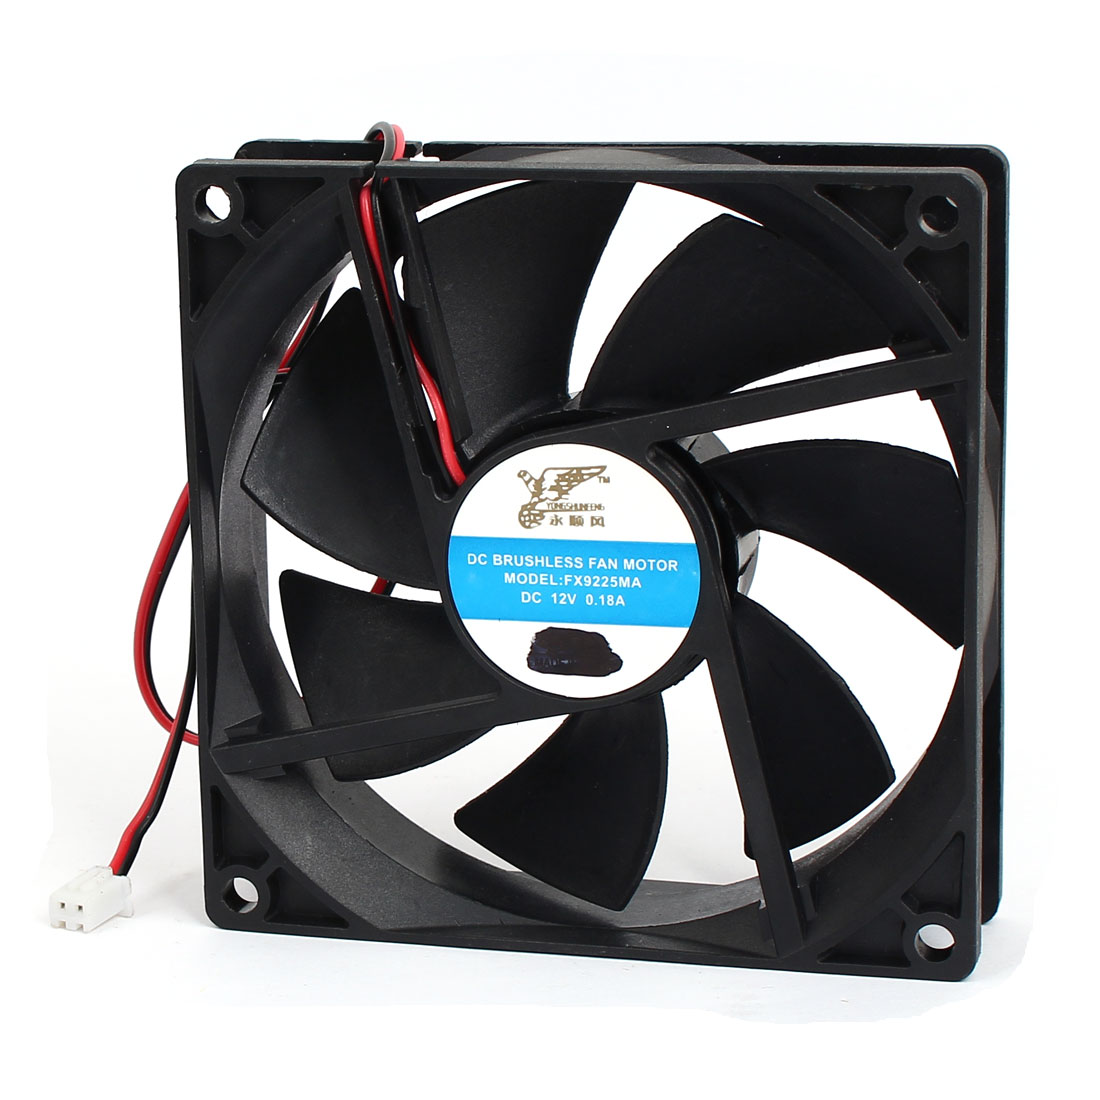 DC 12V 0.18A Brushless Computer PC Case CPU Cooler Cooling Fan 9x9x2.5cm